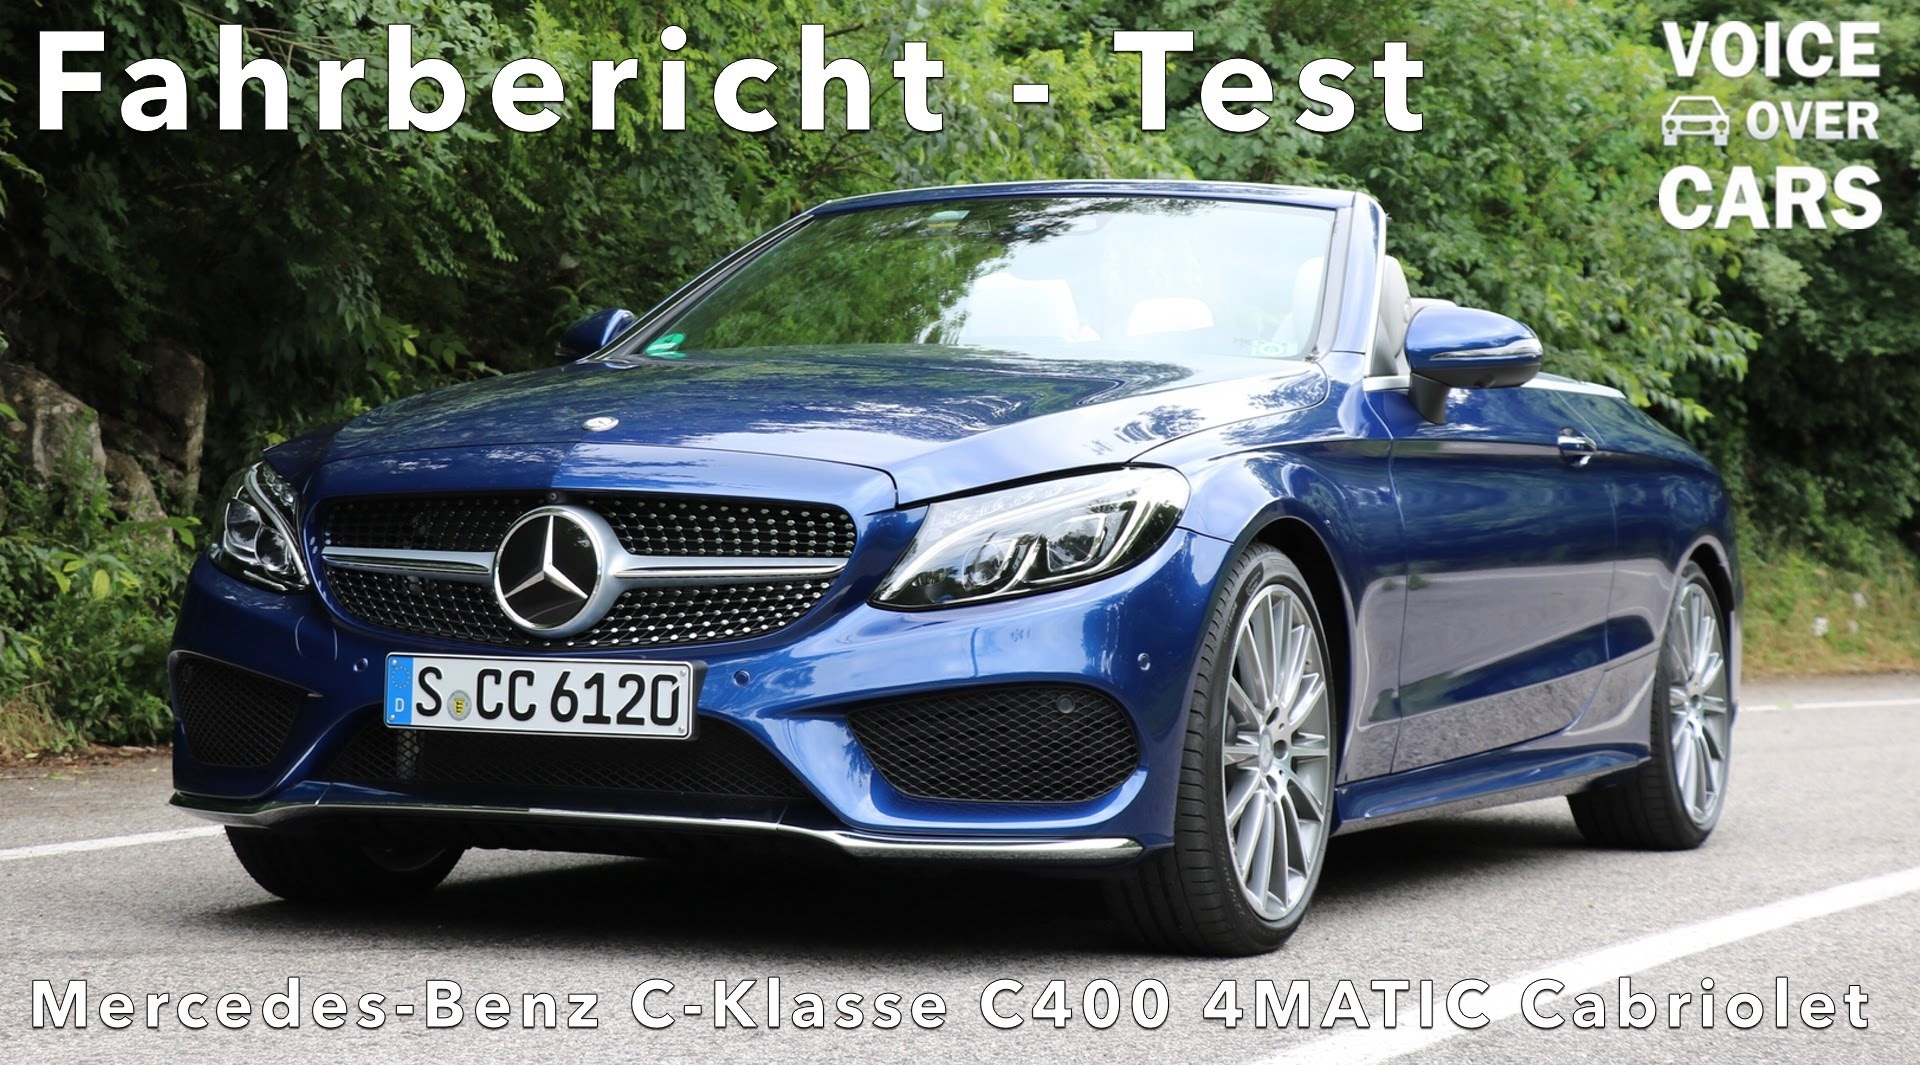 mercedes benz c klasse cabriolet c400 4matic fahrbericht test rad. Black Bedroom Furniture Sets. Home Design Ideas